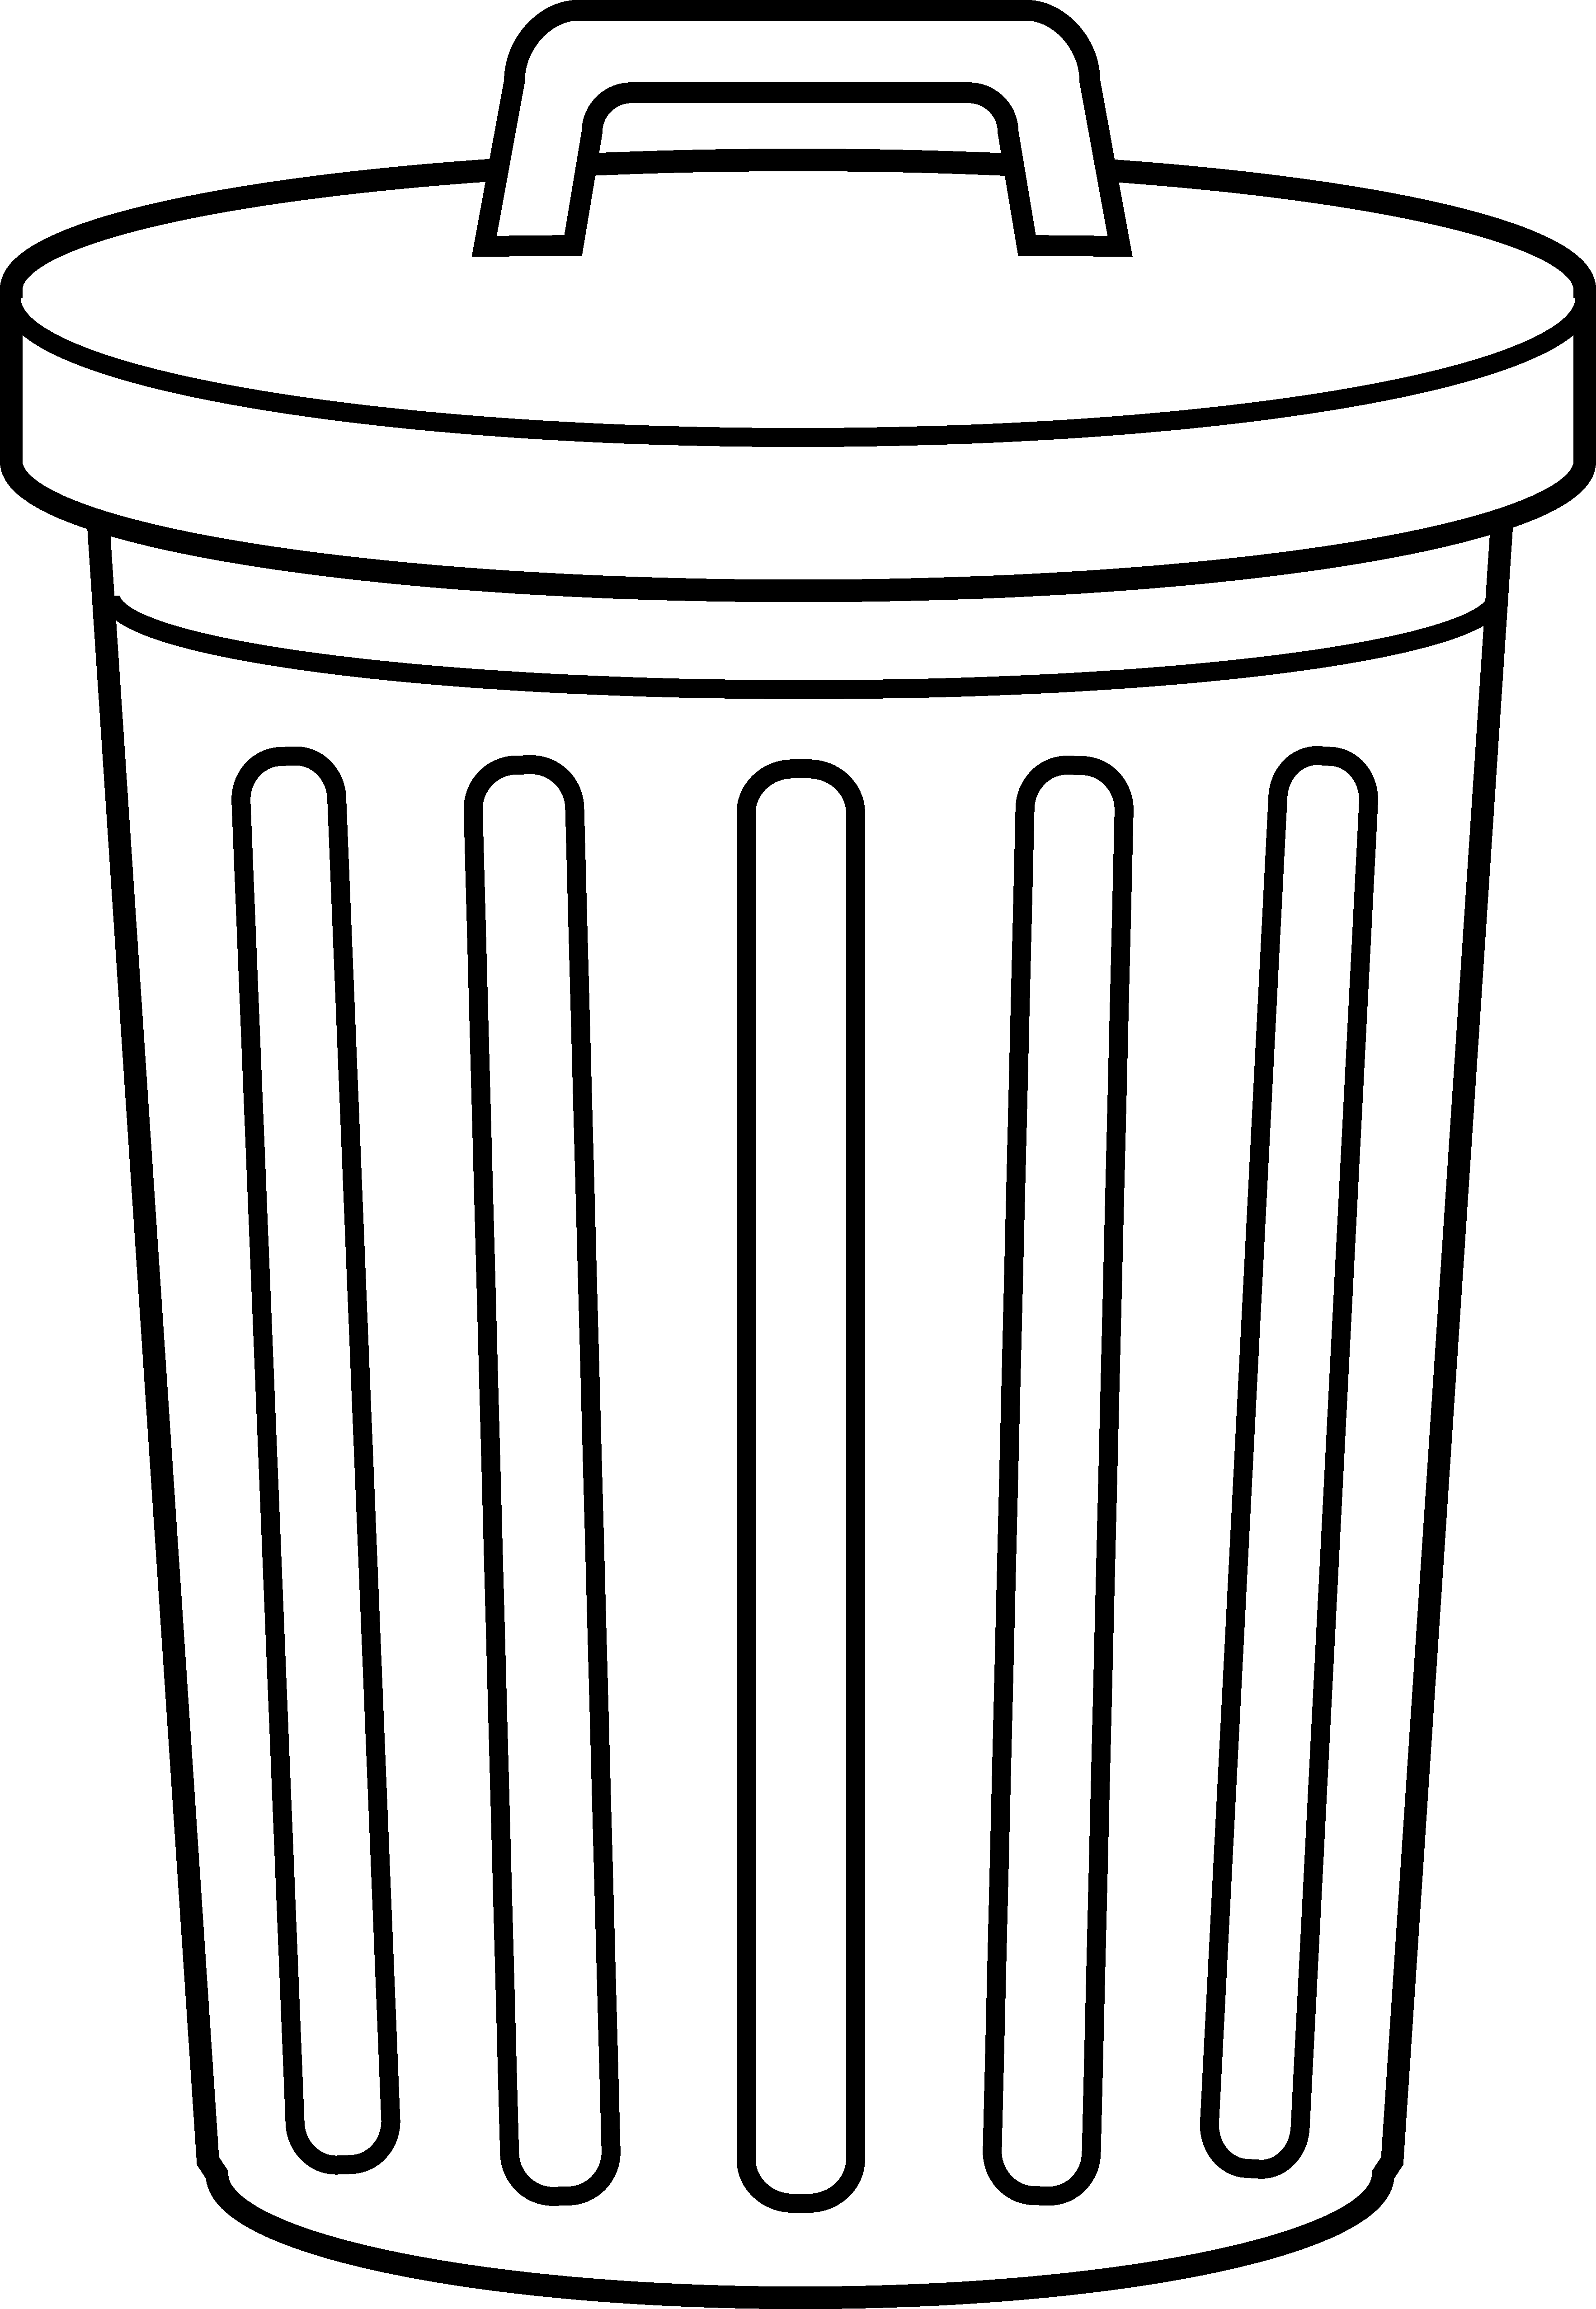 Trash can filled clipart image royalty free Trash can filled clipart - ClipartFest image royalty free